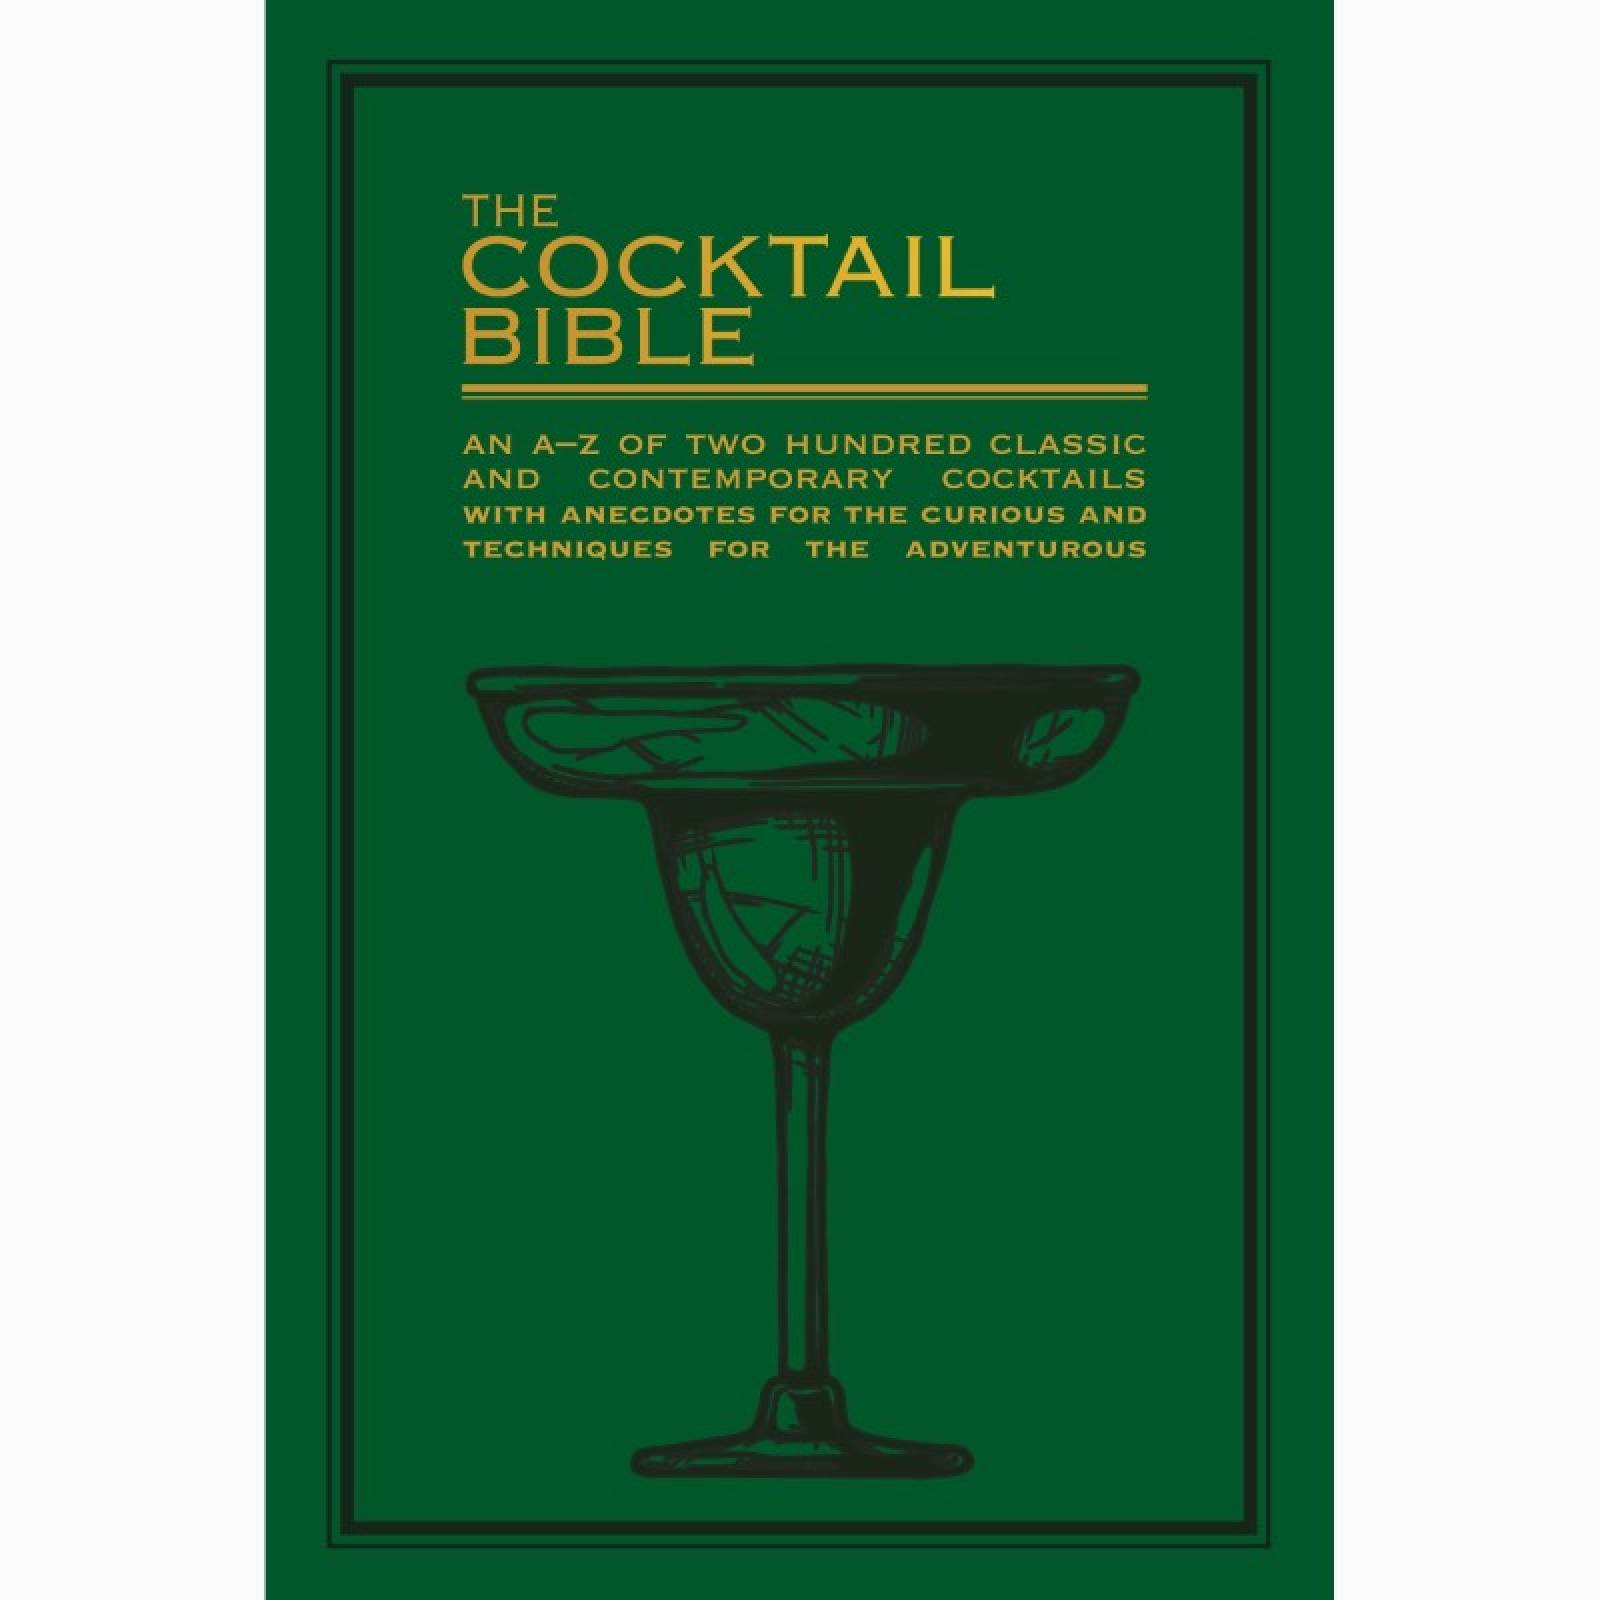 The Cocktail Bible - Paperback Book